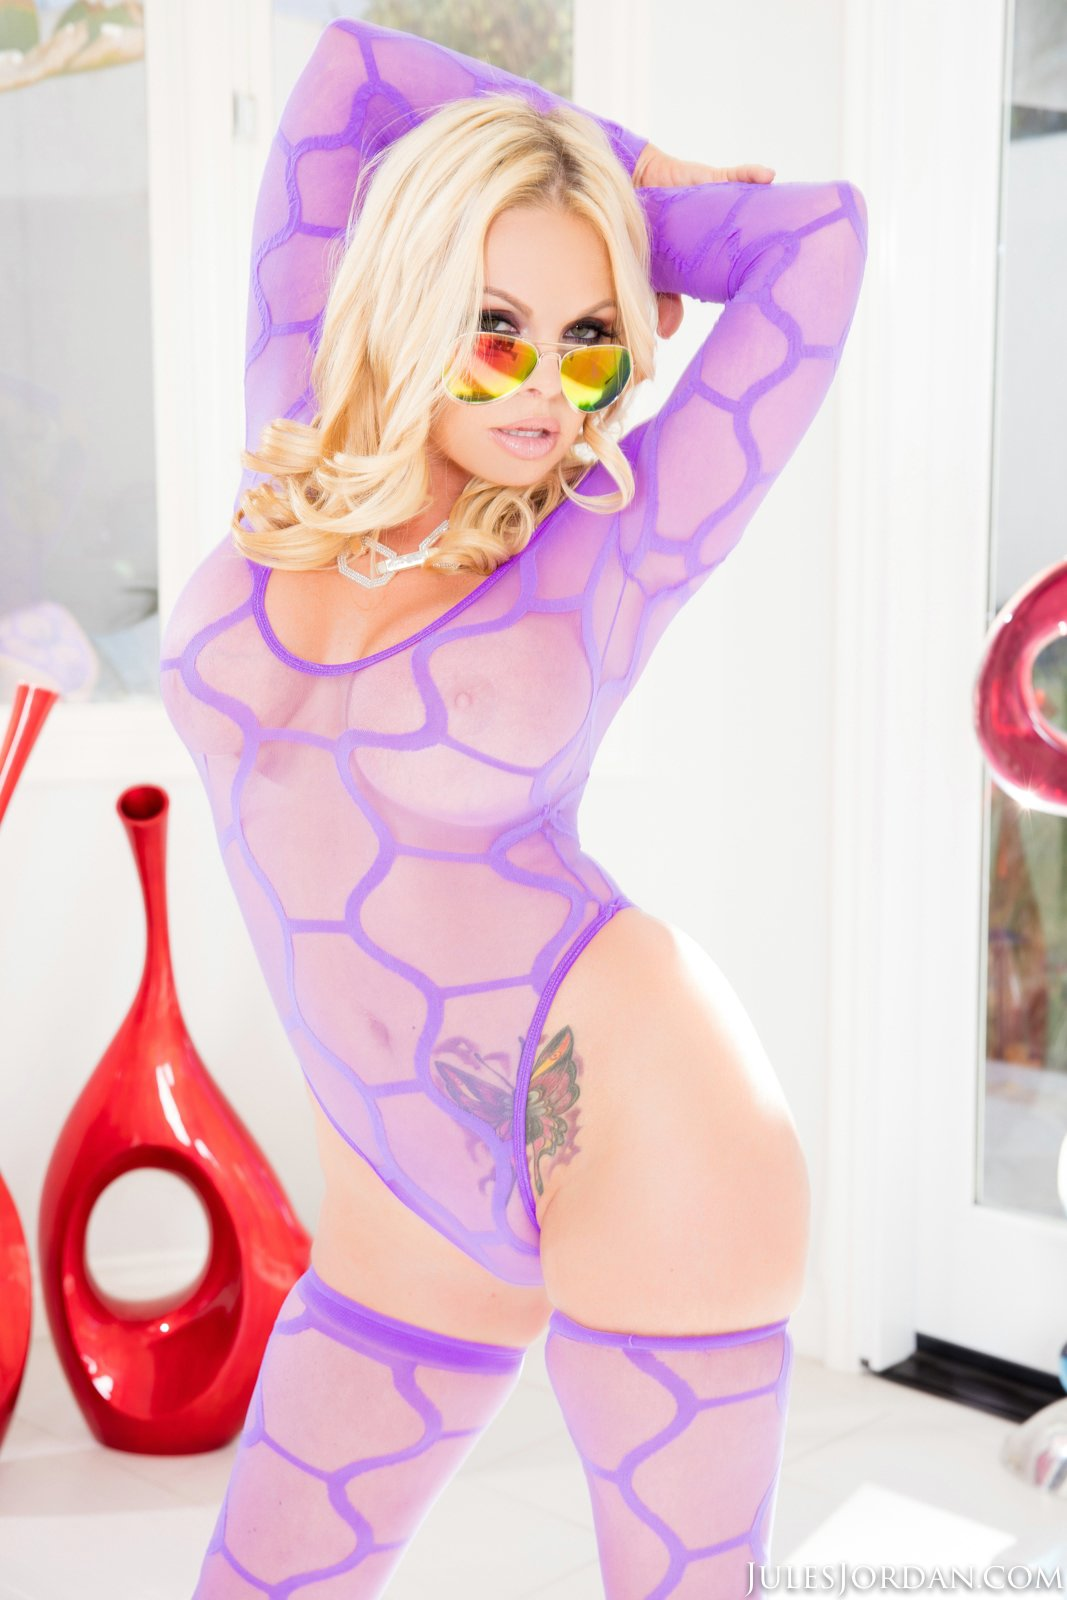 Jesse Jane in sexy purple lingerie and stockings poses for camera - My Pornstar Book